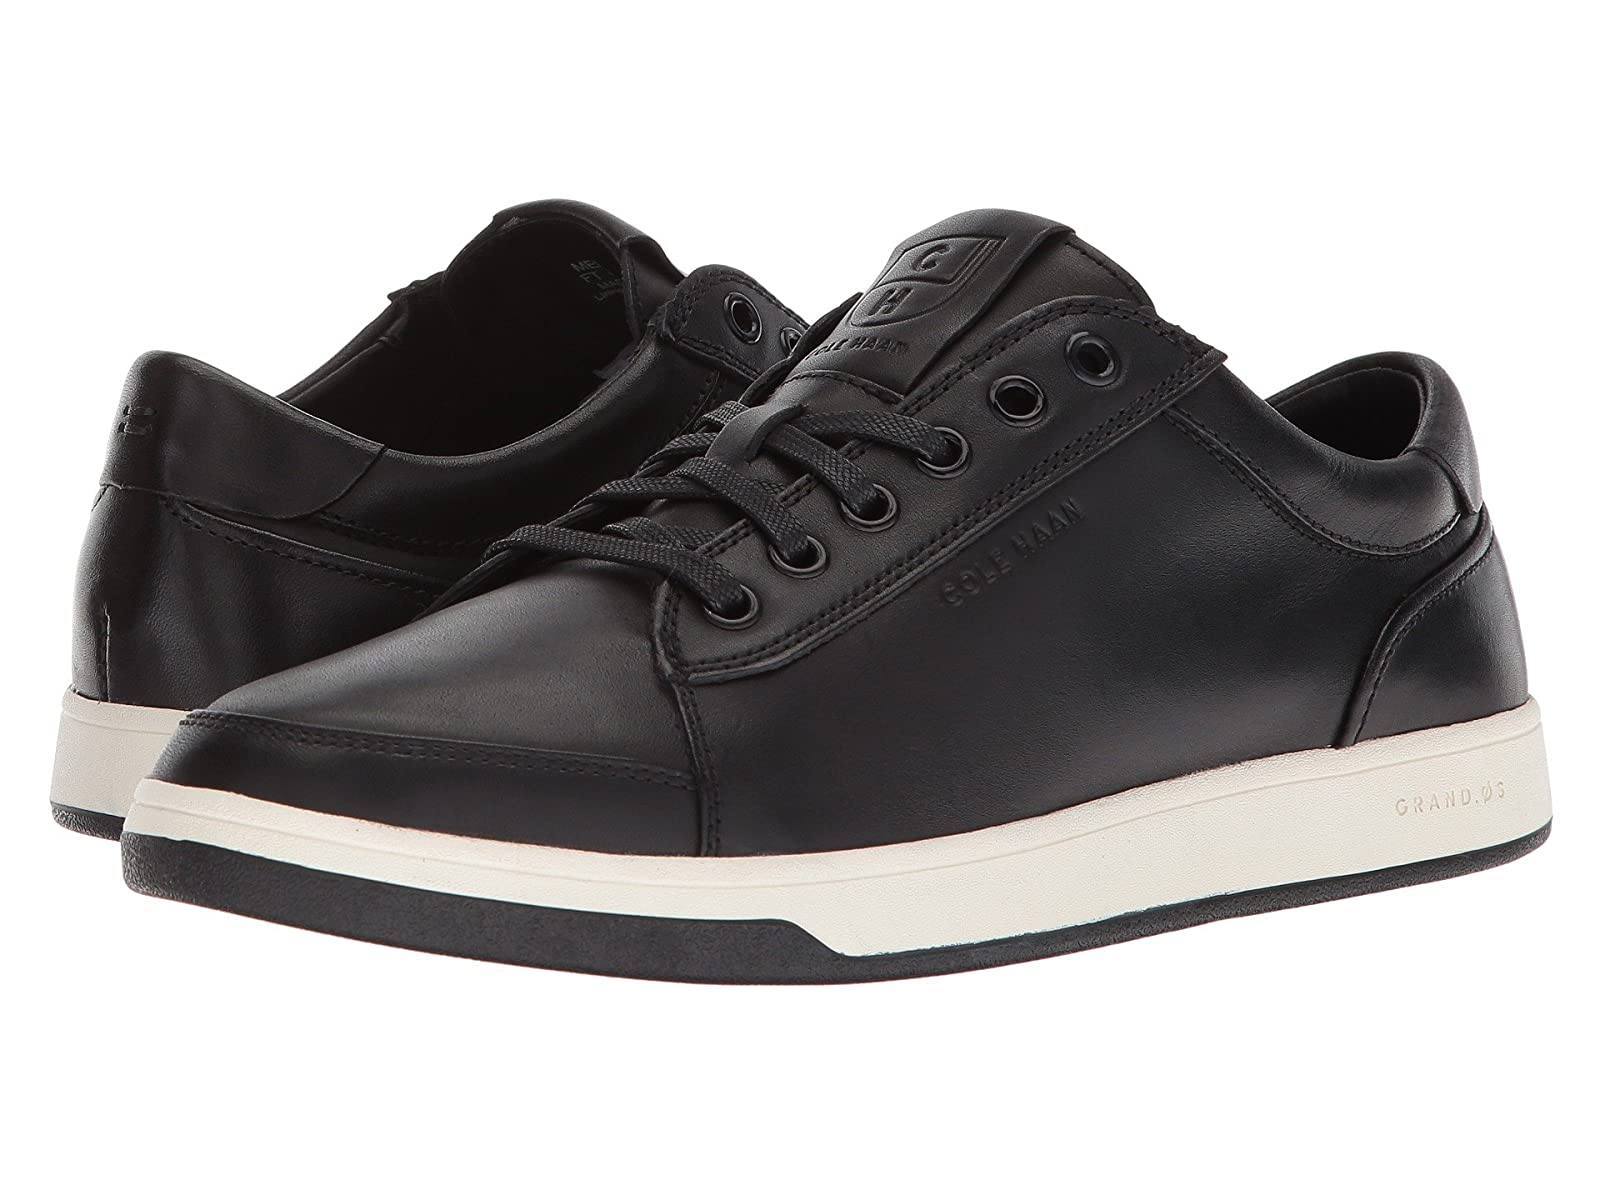 Cole Haan Grandpro Spectator Lace OxAtmospheric grades have affordable shoes